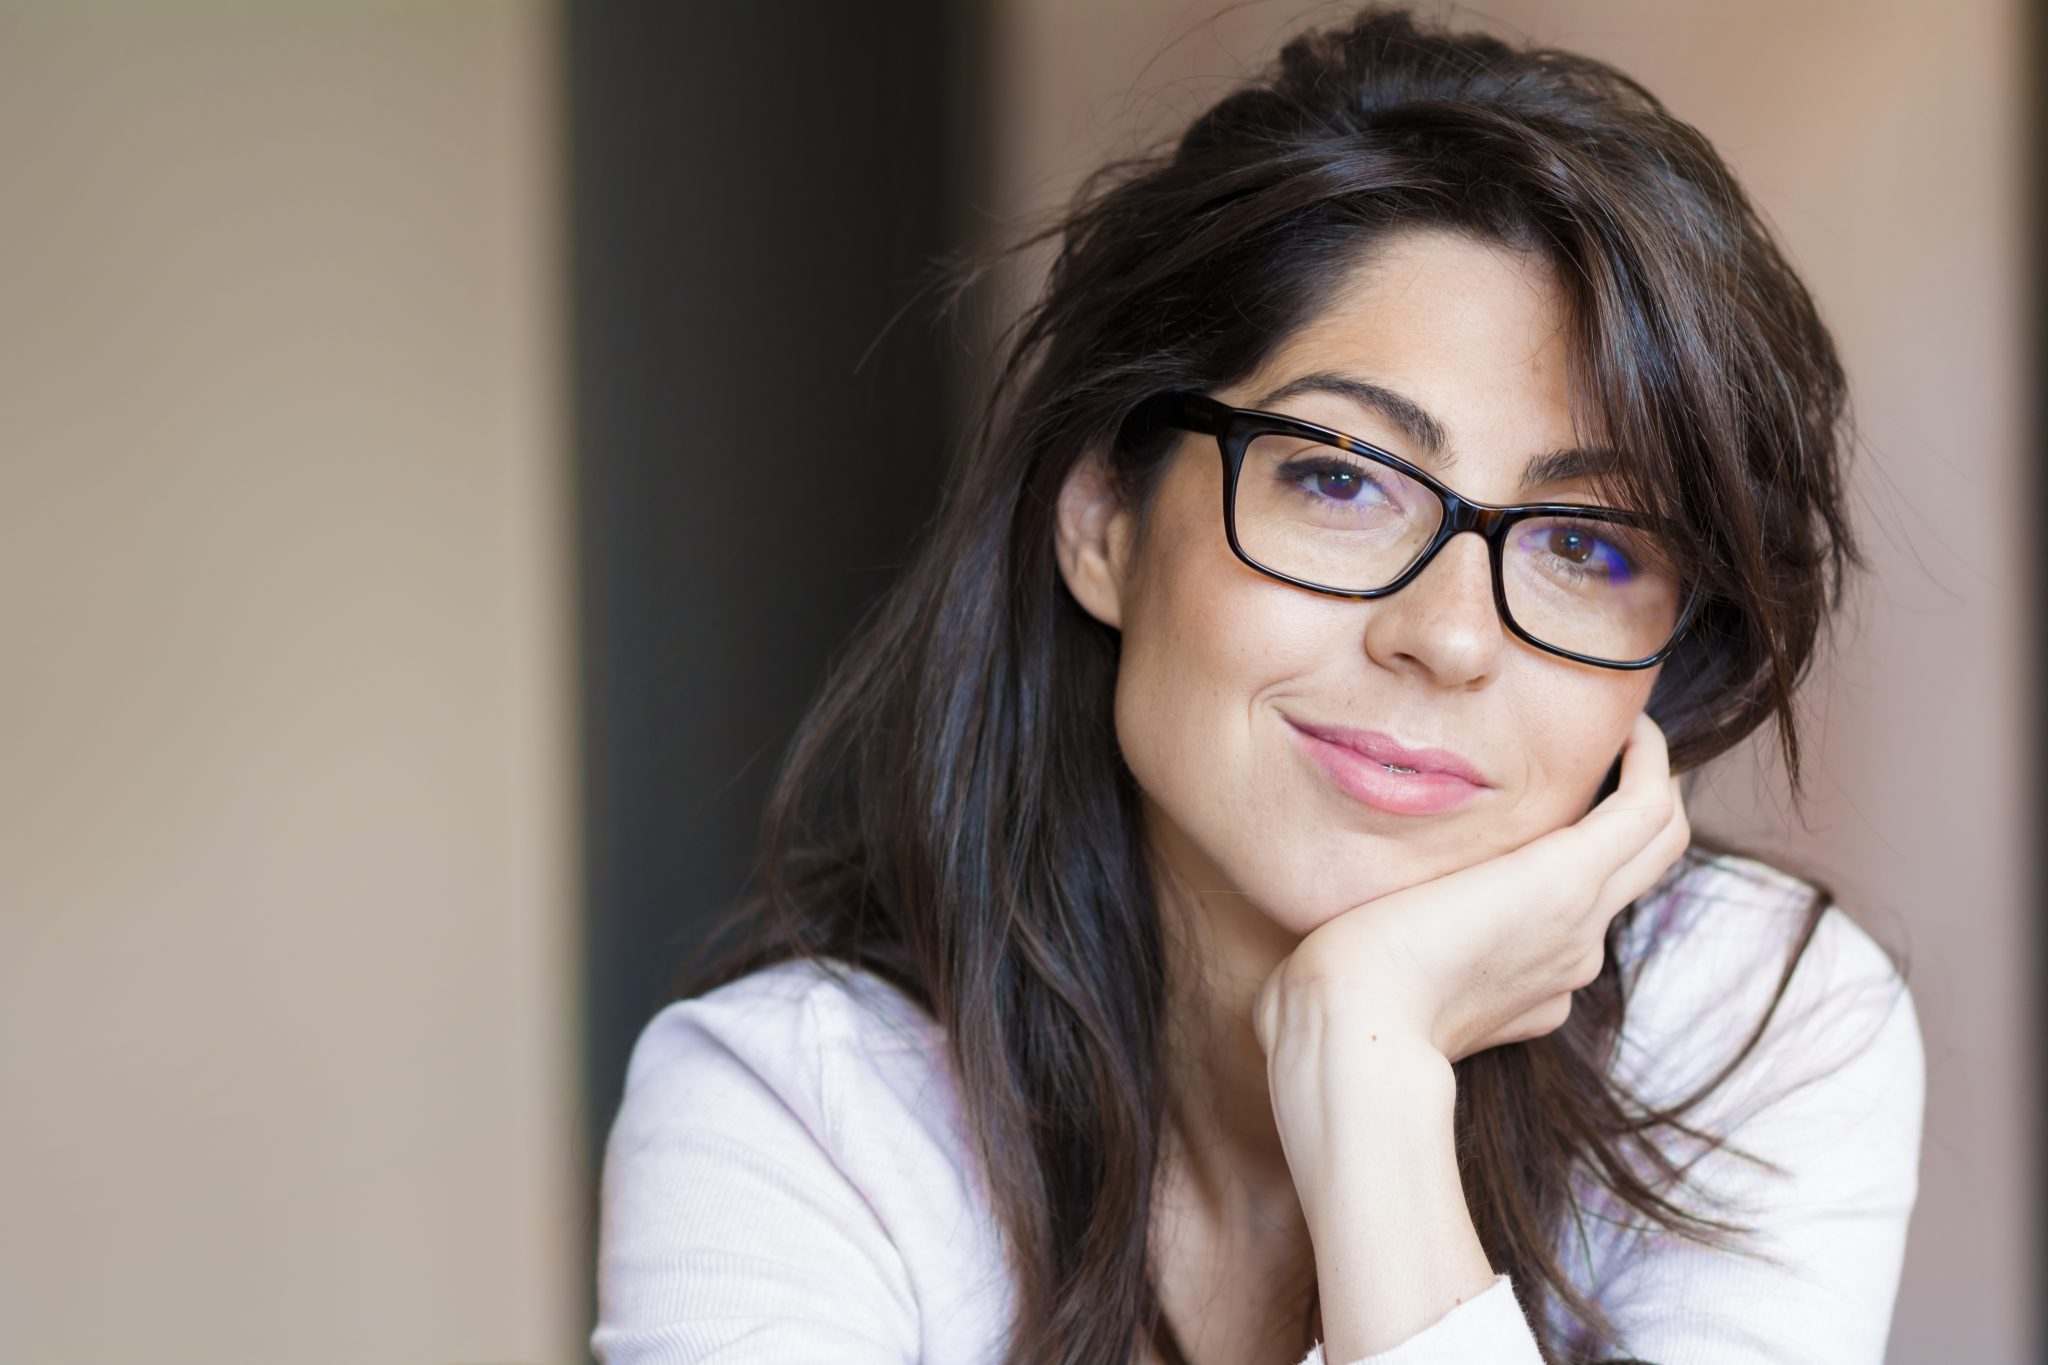 attractive lady resting head on hand wearing stylish glasses after visiting optician